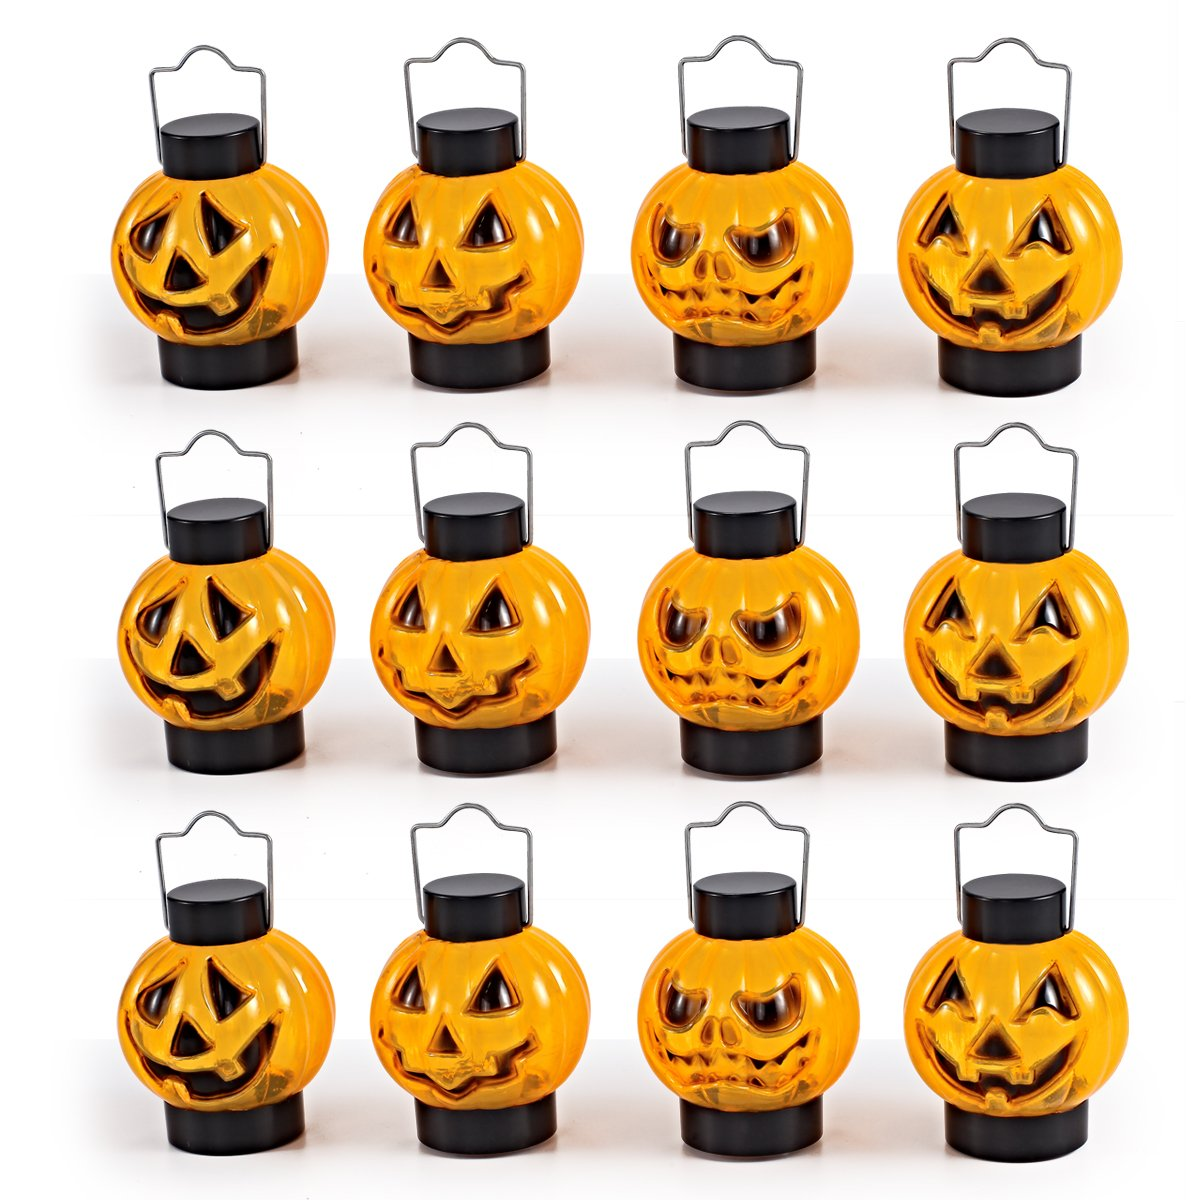 JOYIN 1 Dozen Halloween Light Up Pumpkin Lanterns for Best Halloween Decorations Props